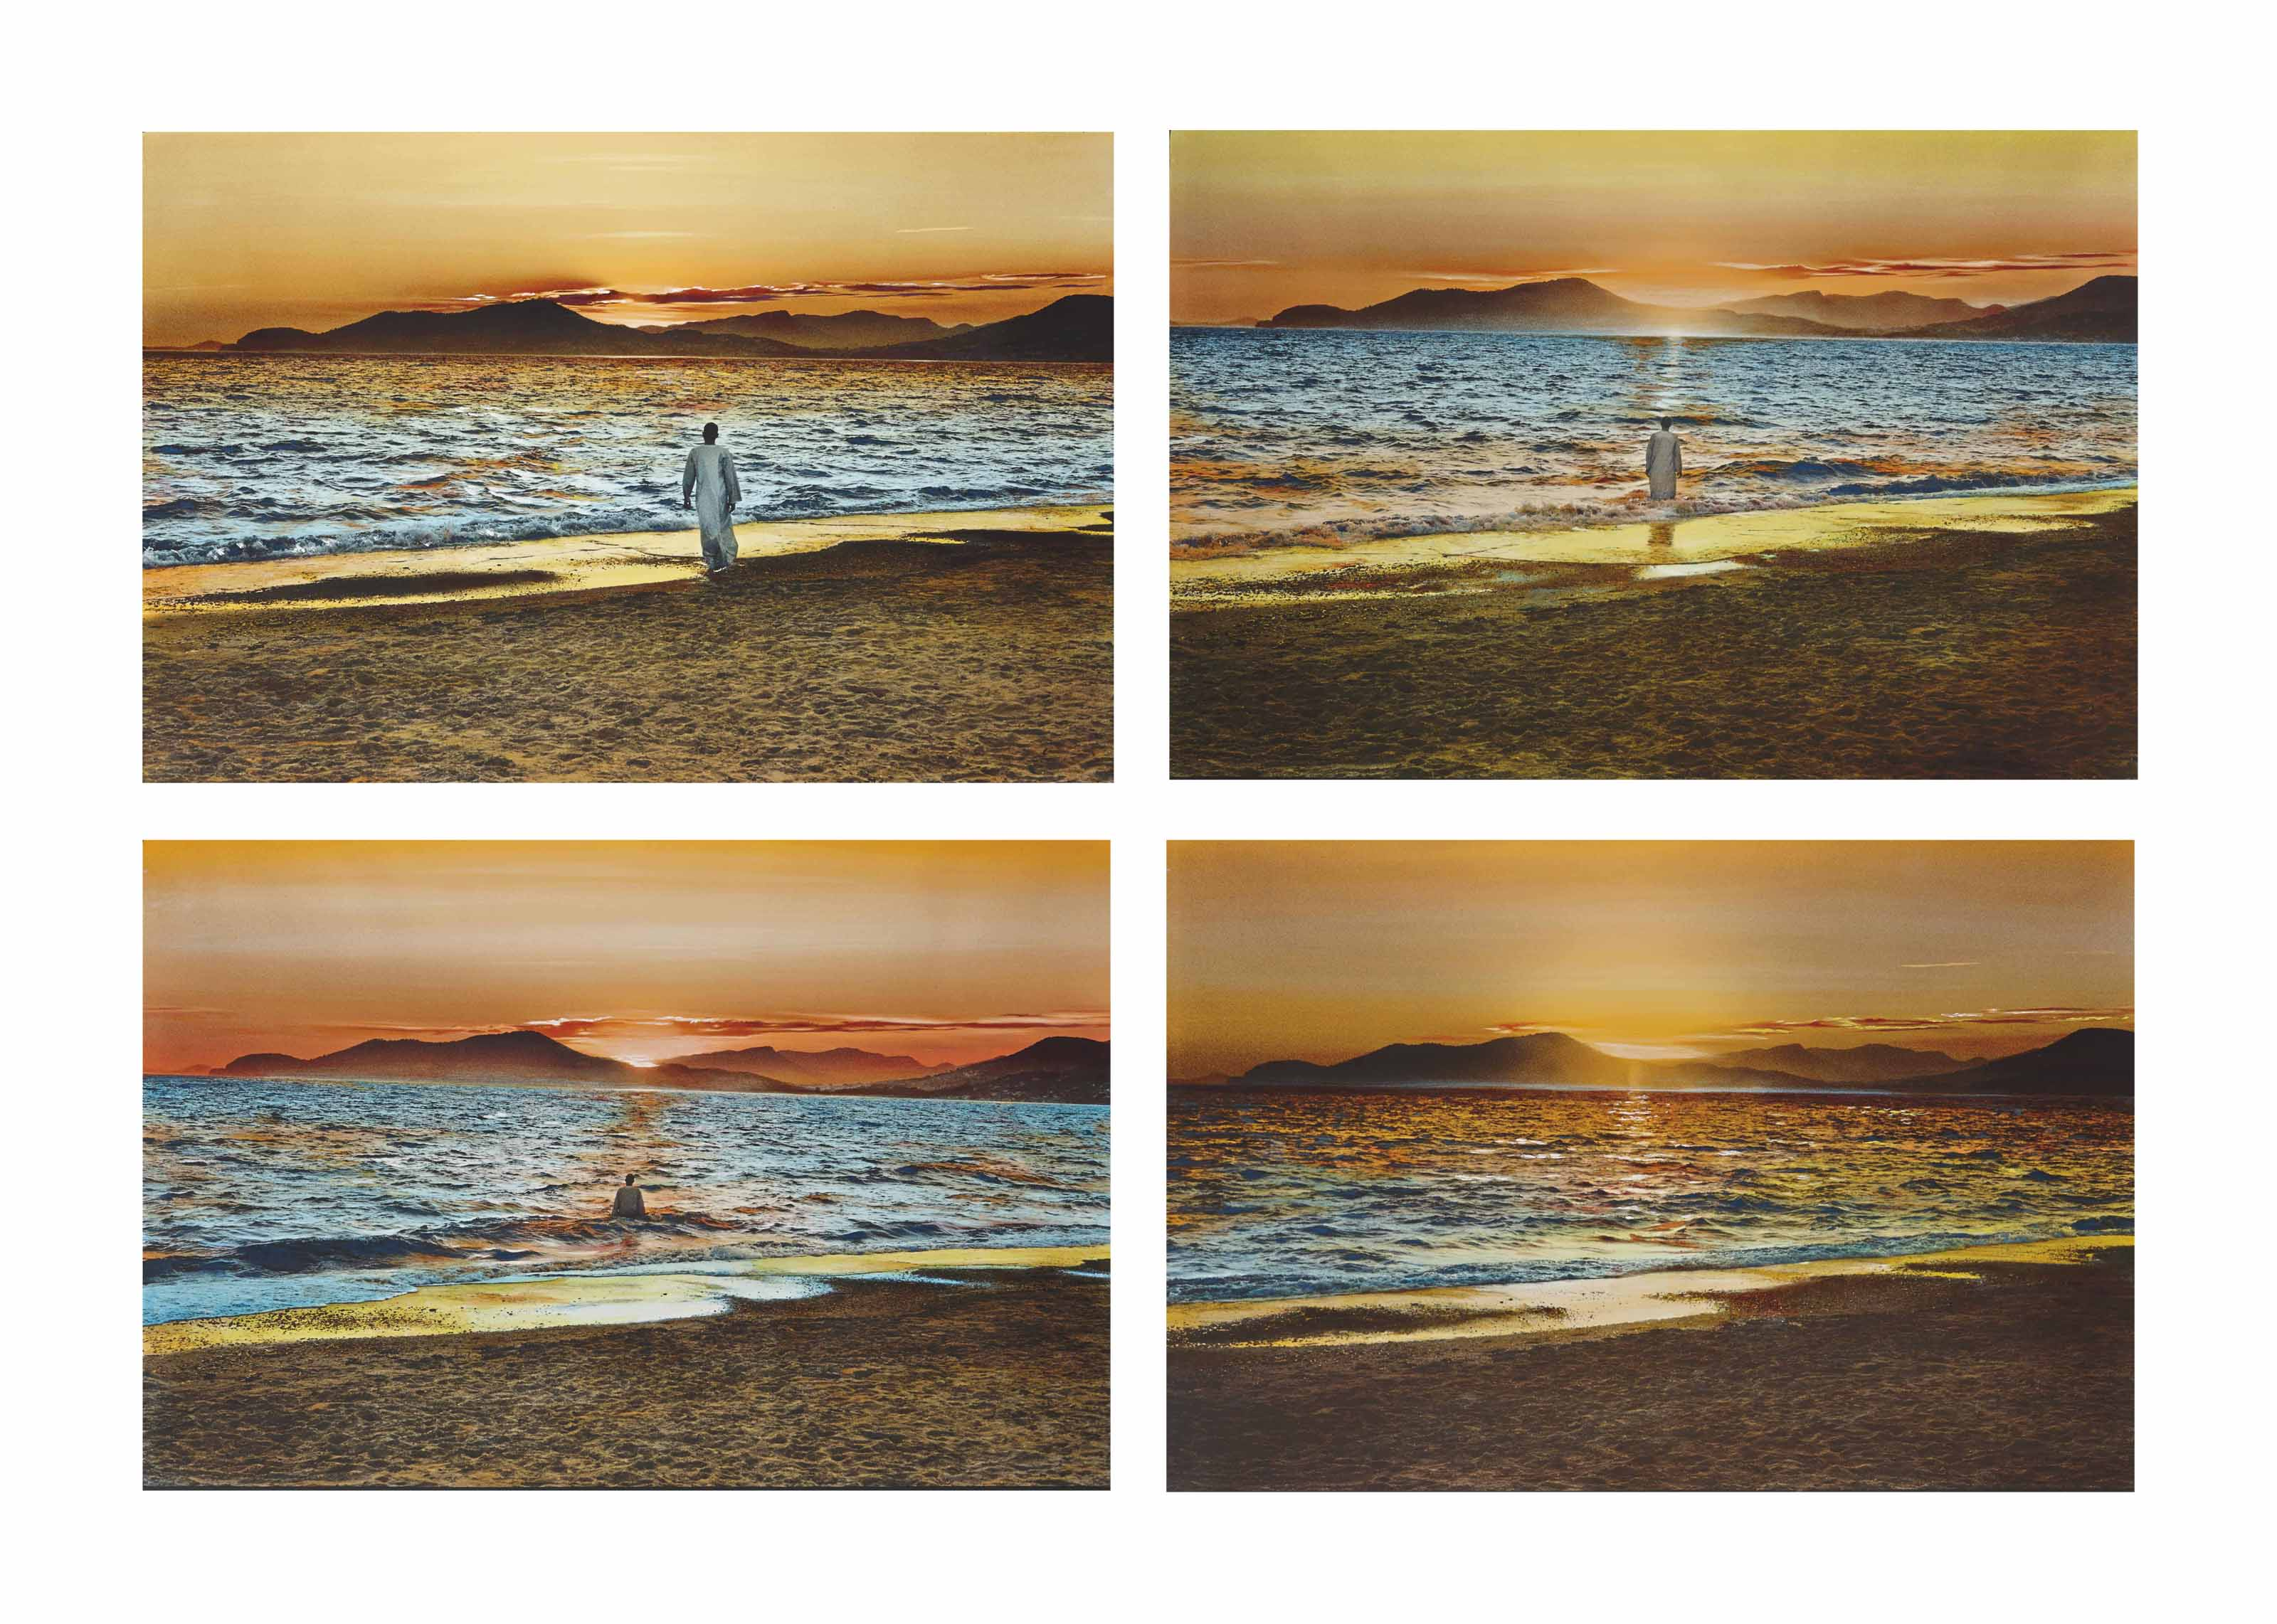 I Will Go to Paradise - Self-Portrait, Hyères, 2008